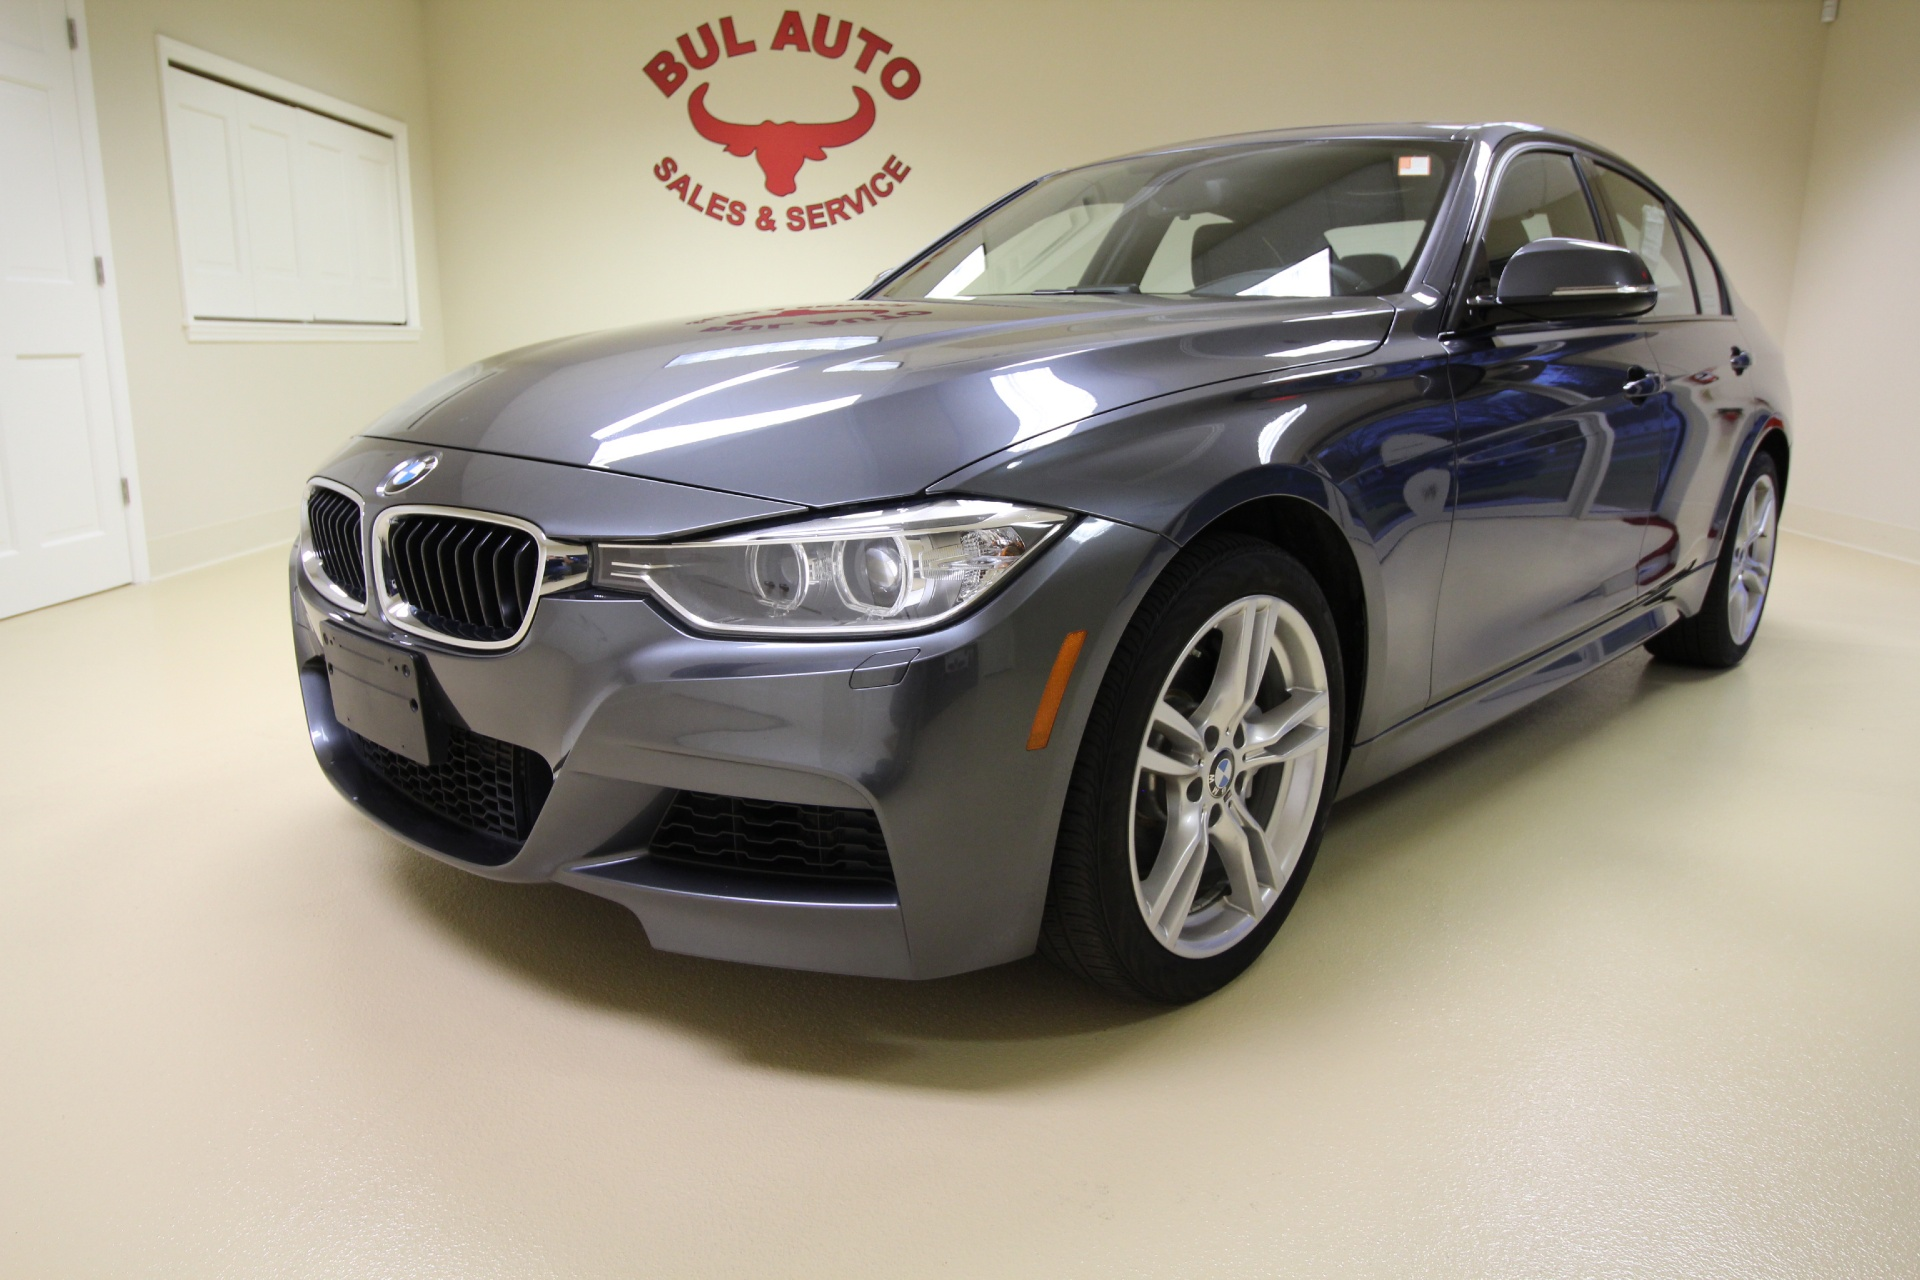 2013 bmw 3 series 335i xdrive 6 speed manual rare msport stock 16013 for sale near albany ny. Black Bedroom Furniture Sets. Home Design Ideas